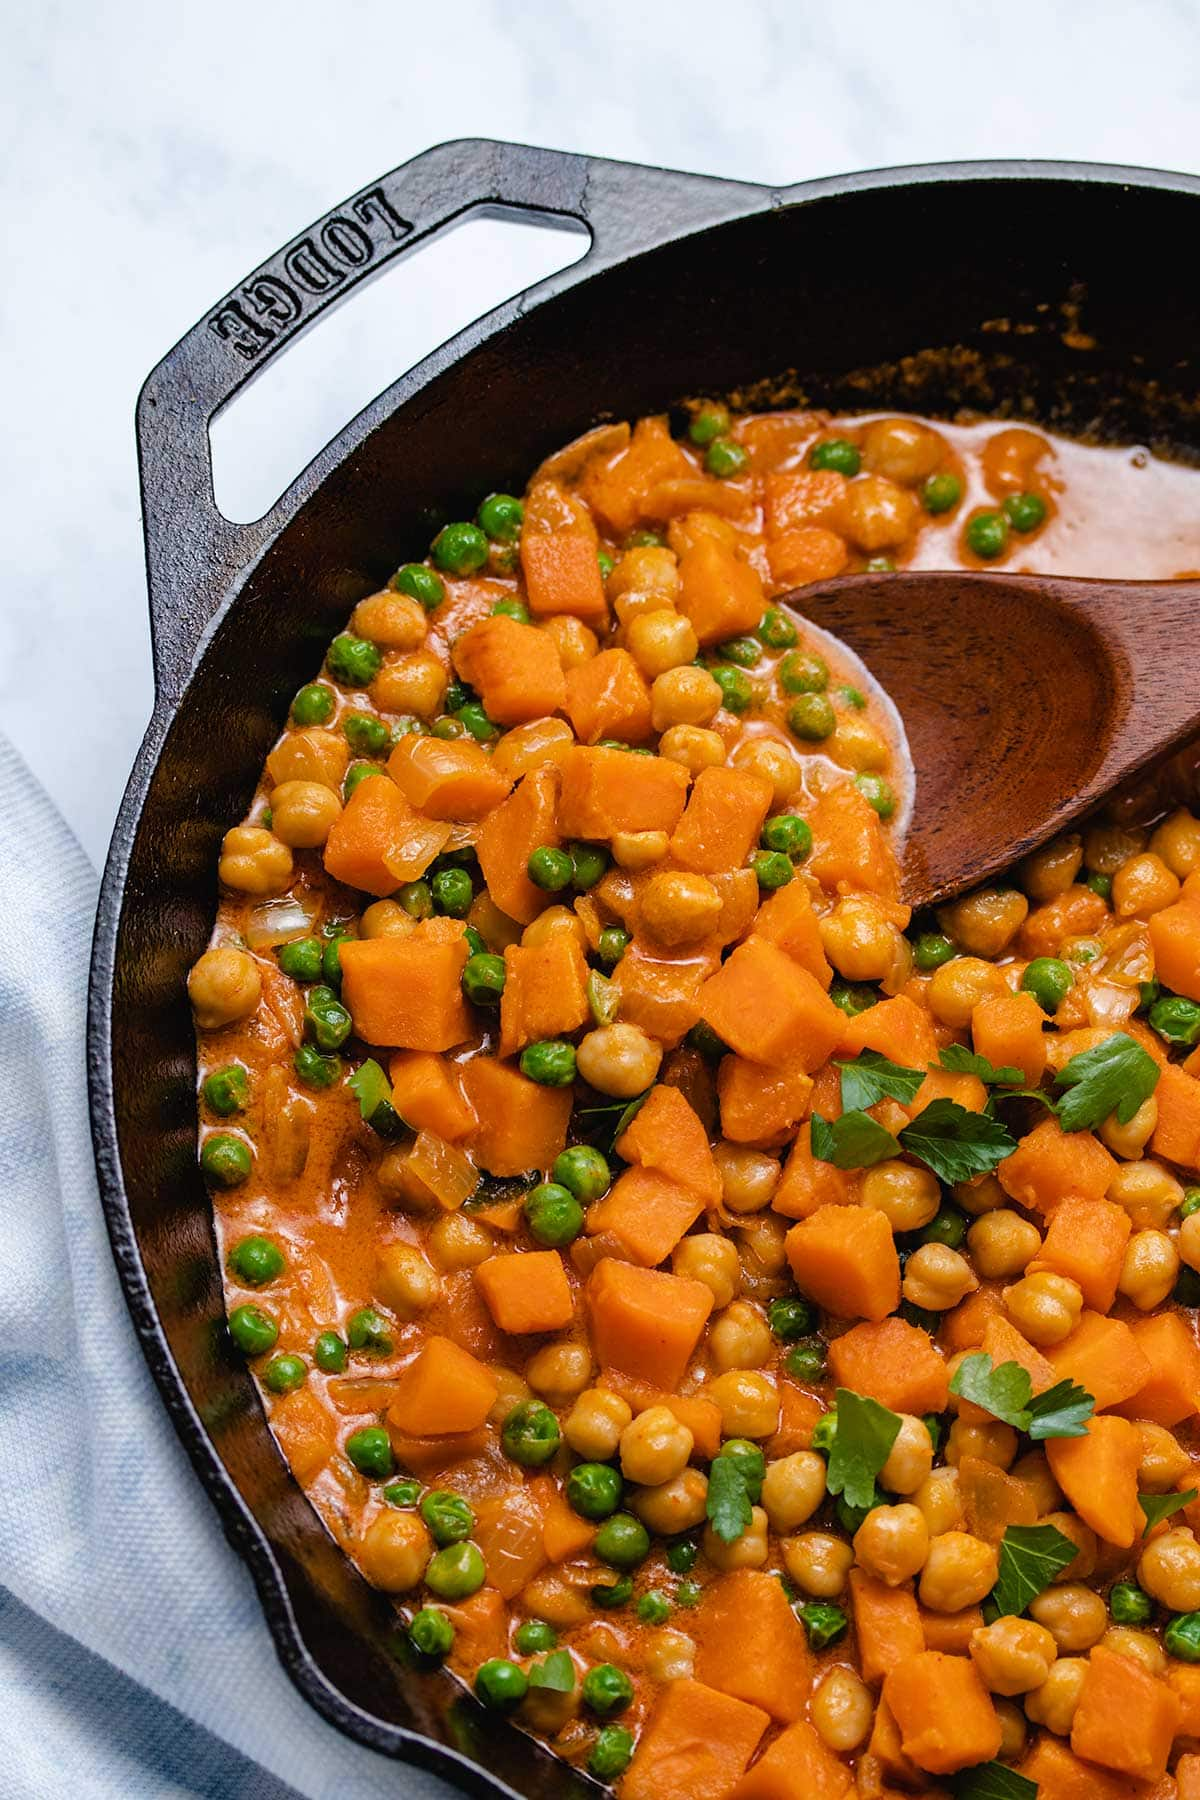 Sweet Potato Chickpea Coconut Curry in a cast iron skillet being scooped by a wooden spoon